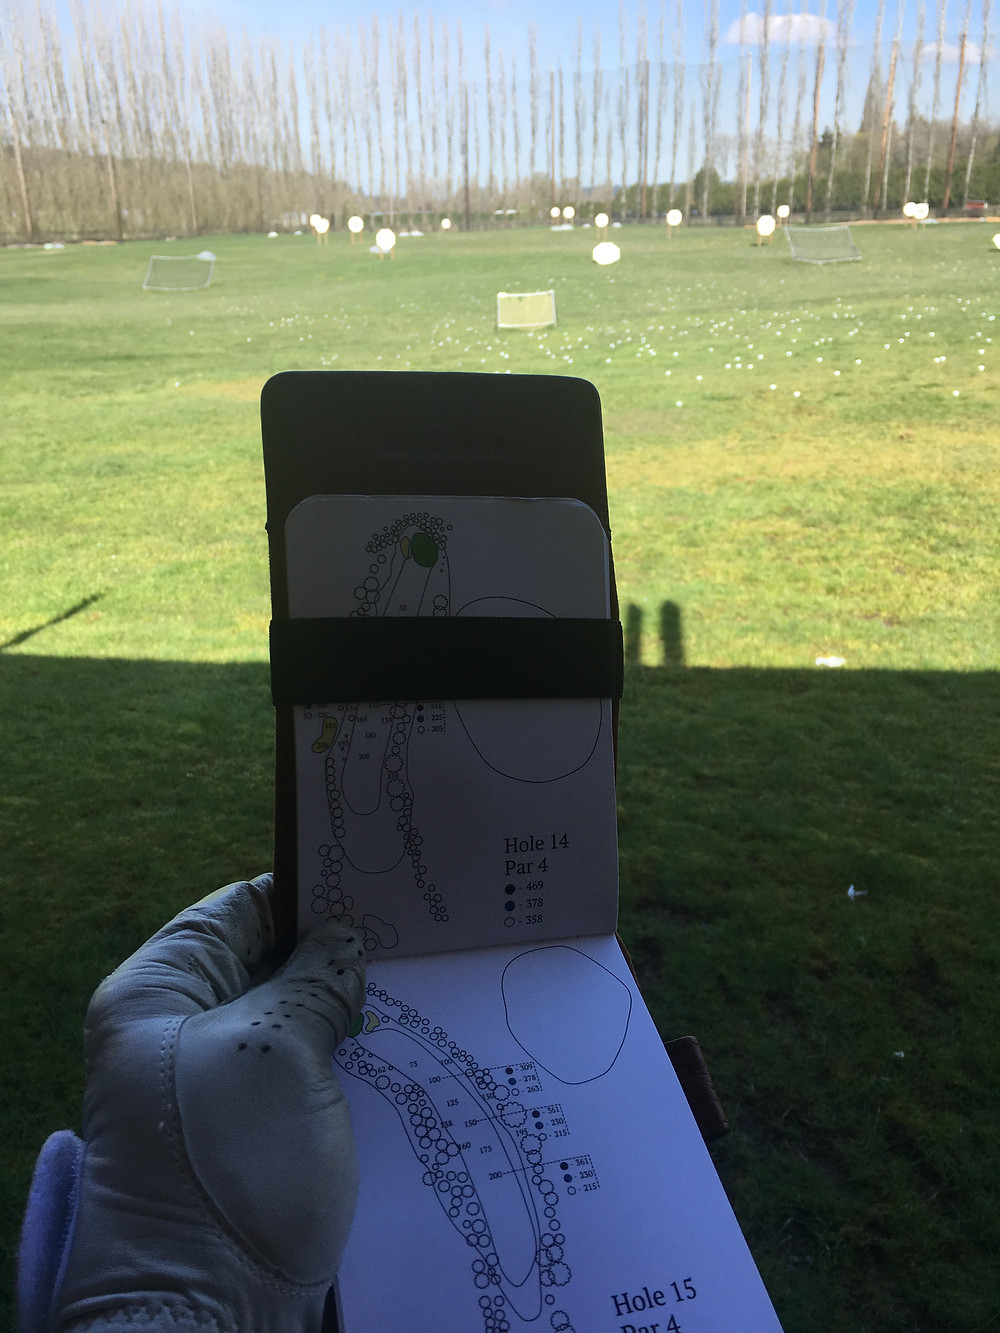 Using a Yardage Book